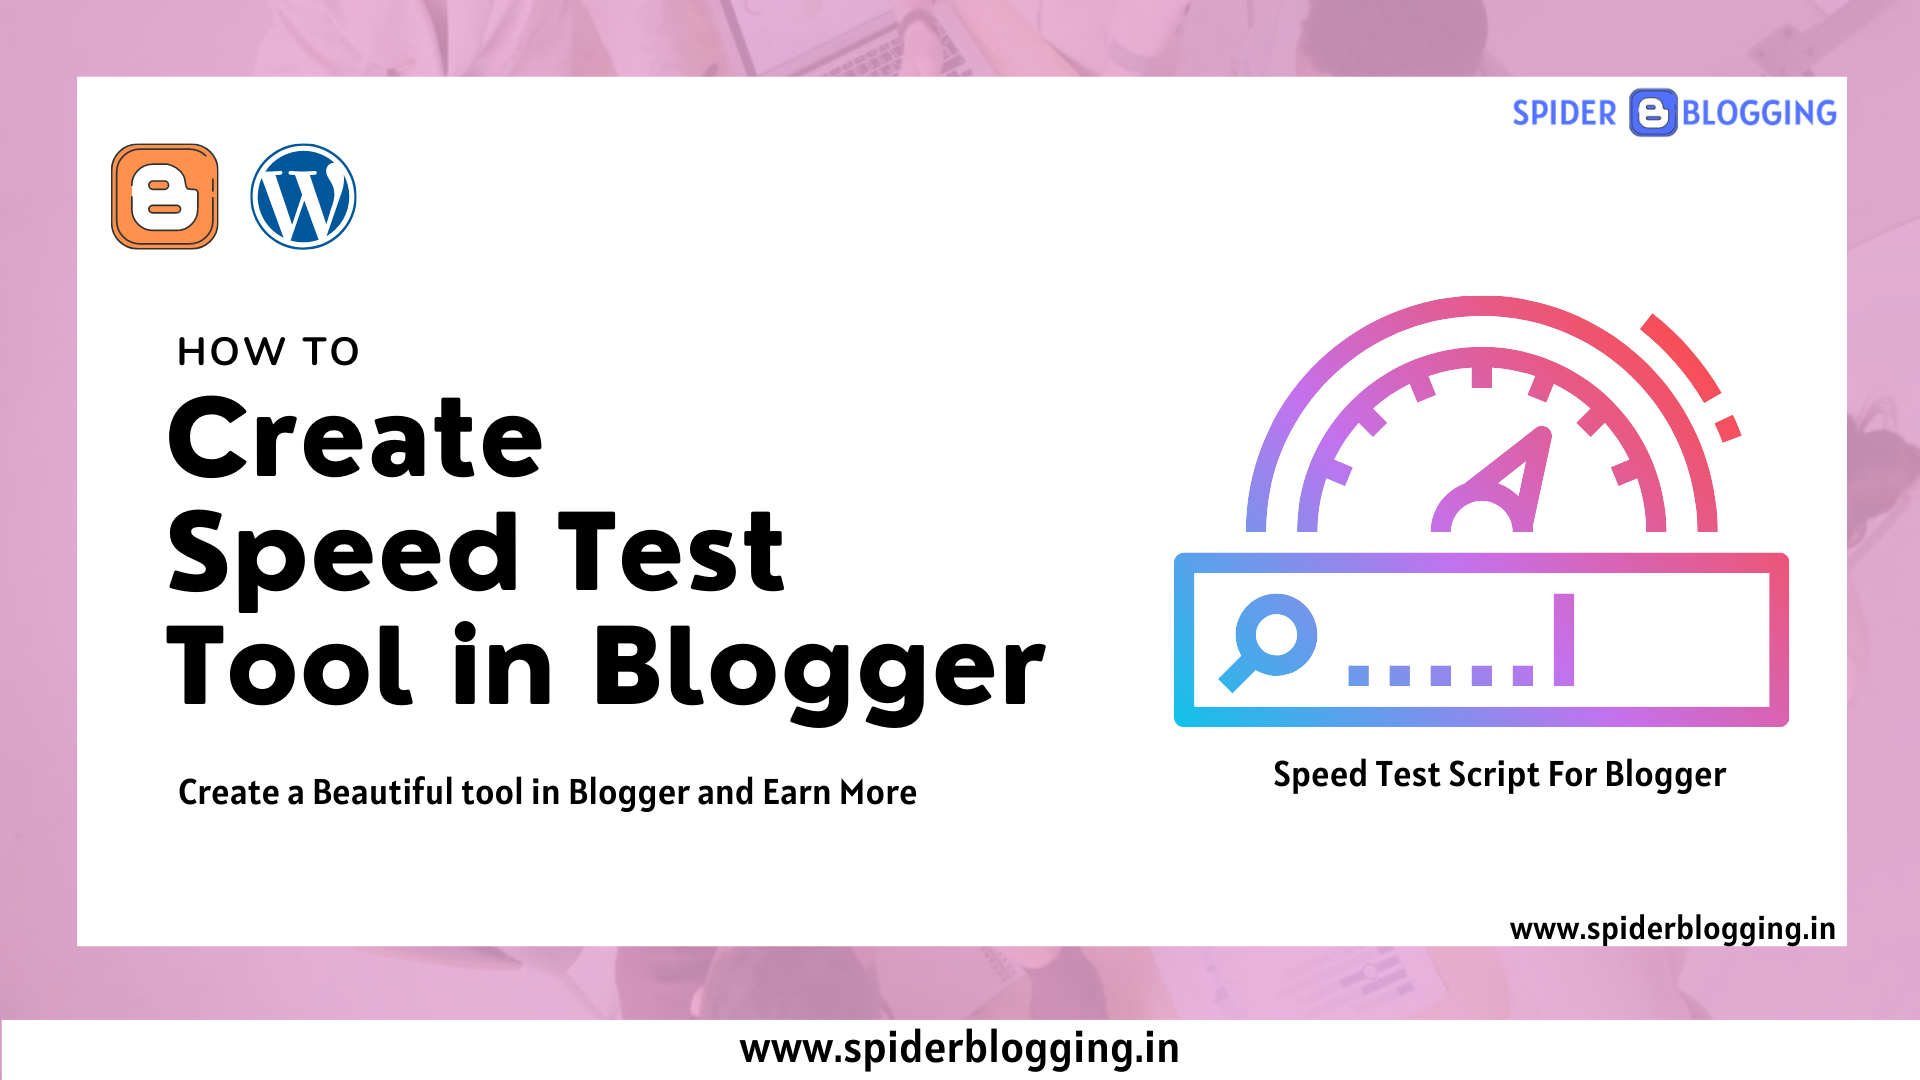 How to Create Speed Test Tool in Blogger | Spider Blogging